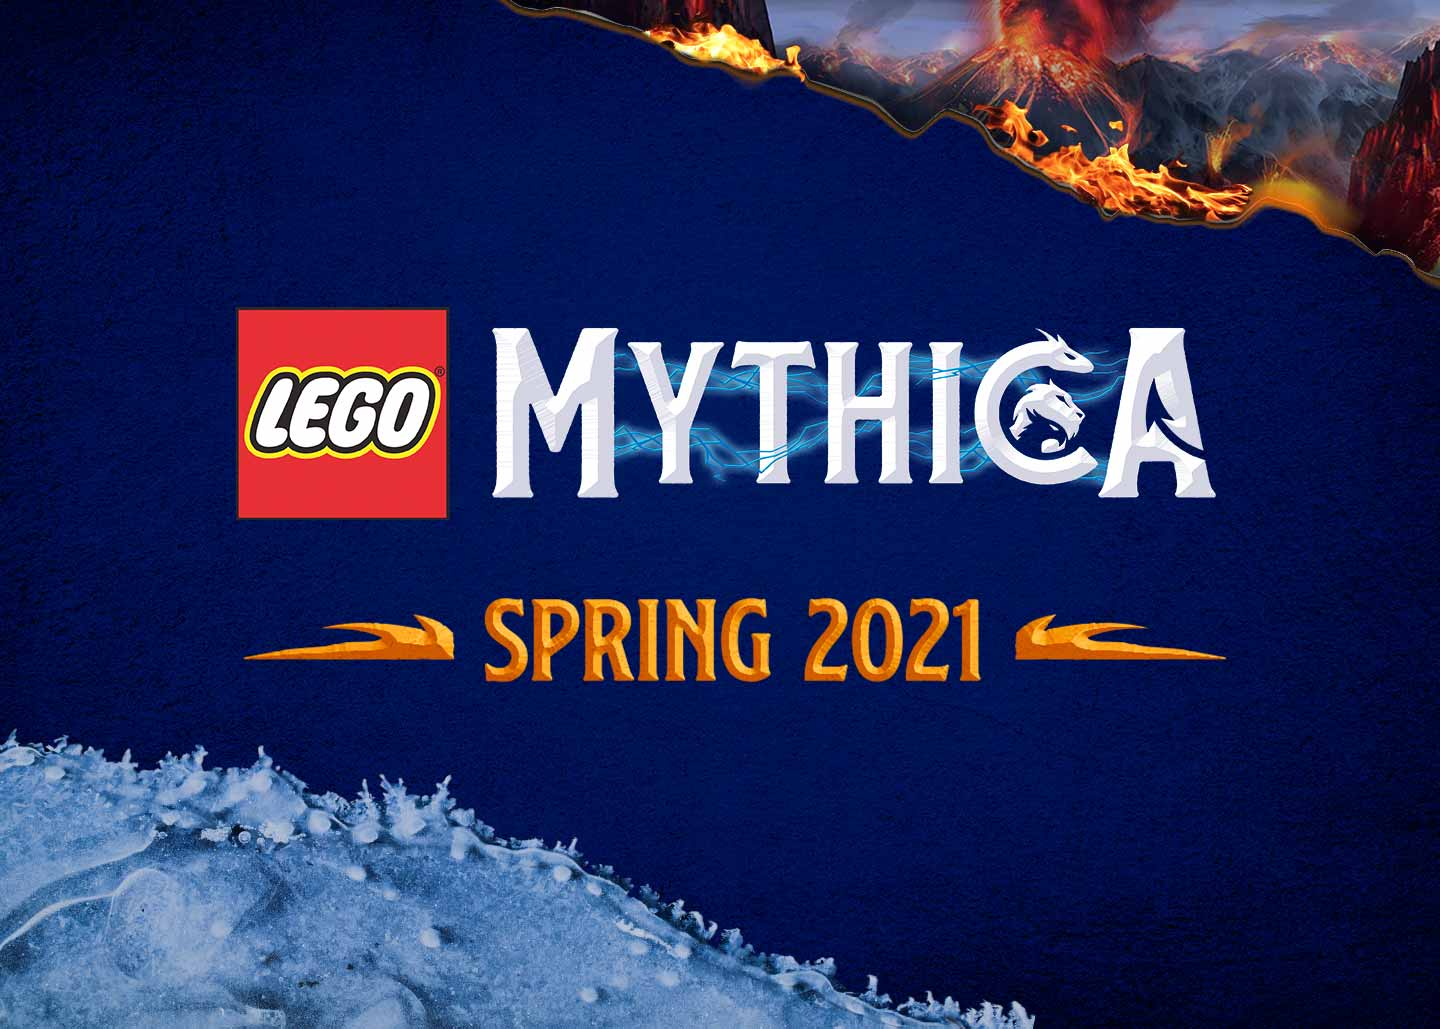 Mythica at LEGOLAND Windsor